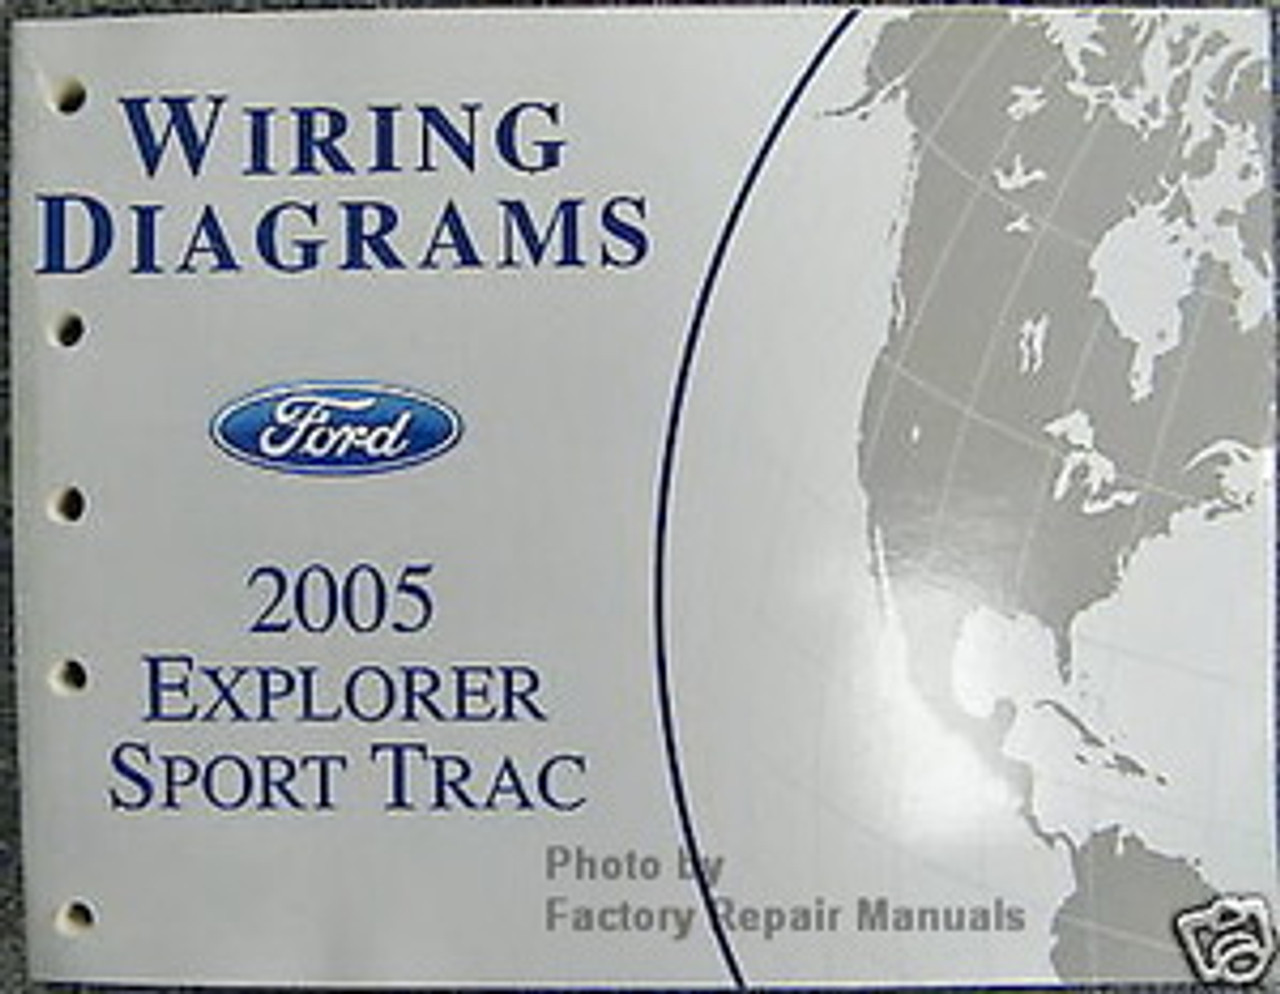 2005 Ford Explorer Sport Trac Electrical Wiring Diagrams